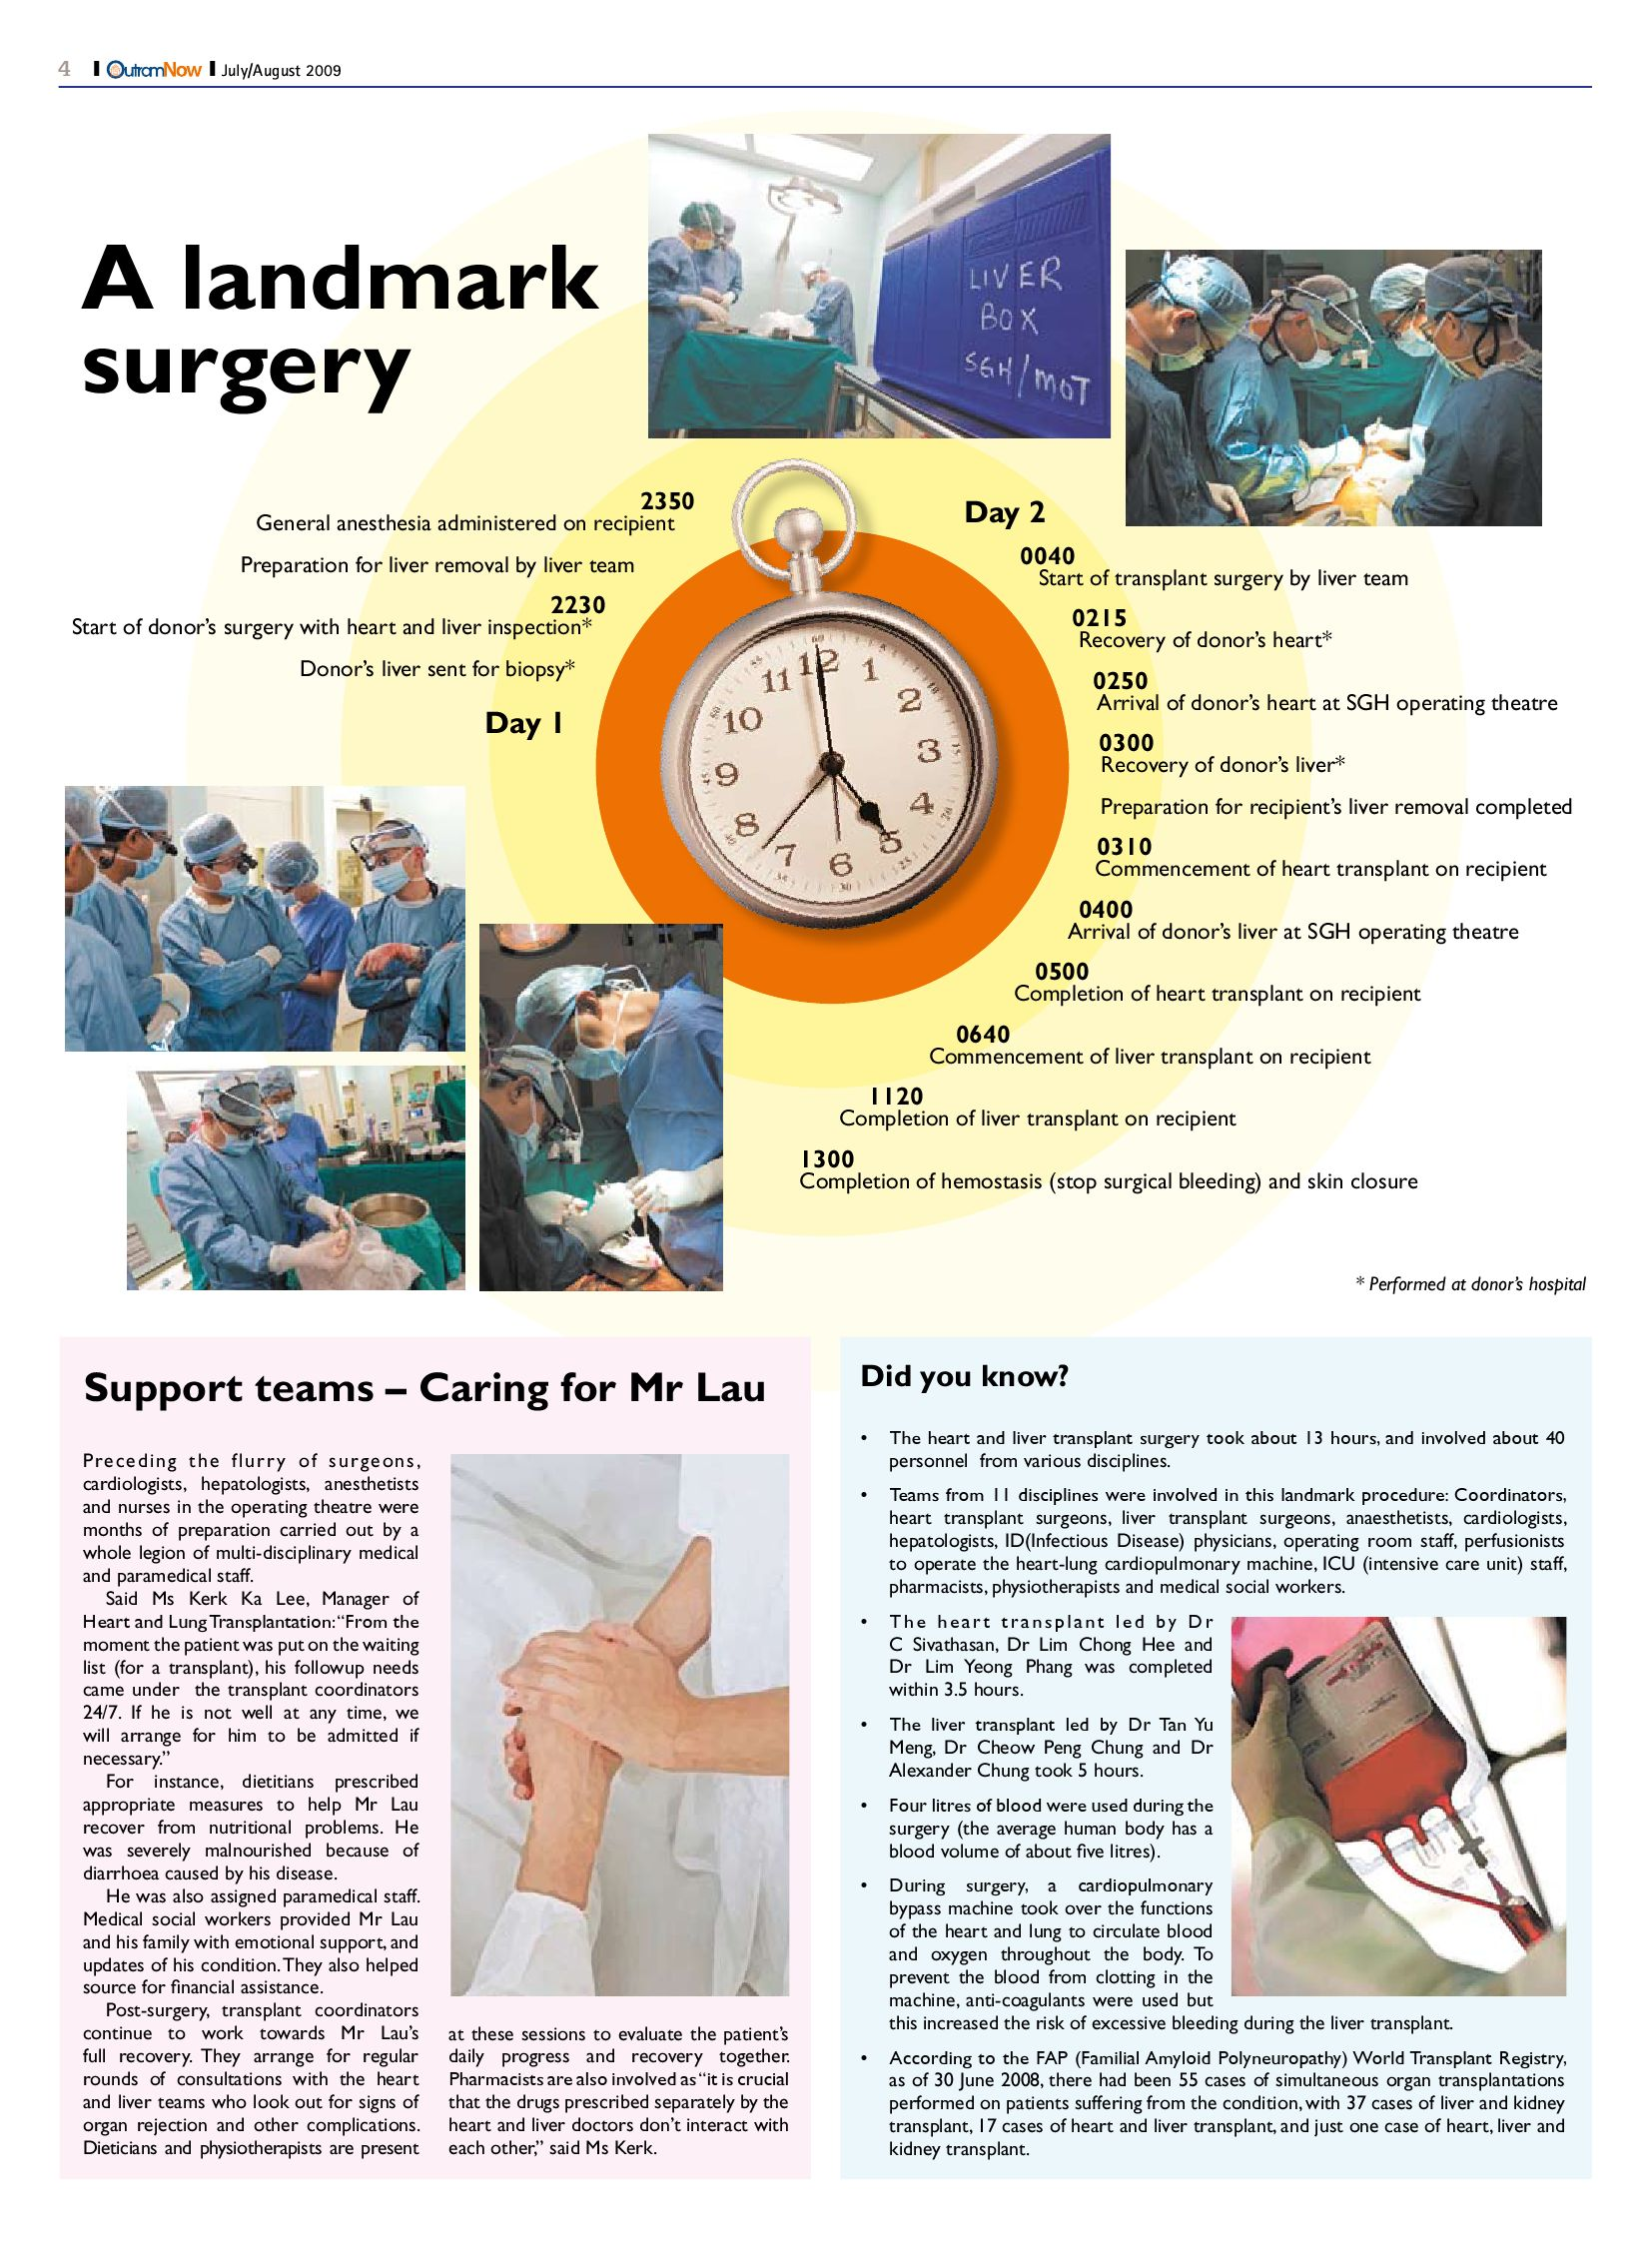 OutramNow July/August 09 by Singapore General Hospital - issuu